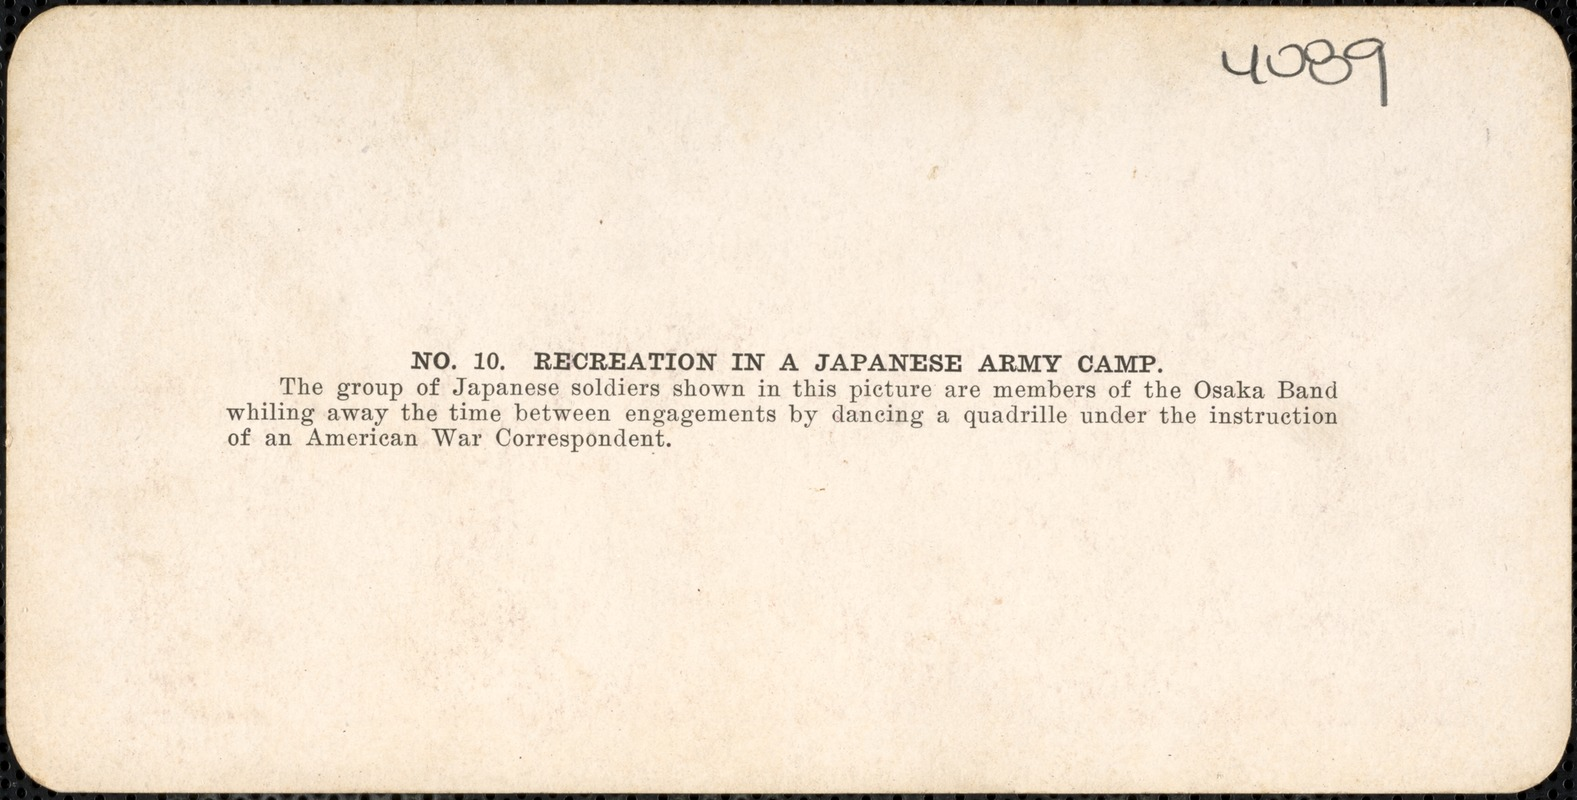 Recreation in a Japanese army camp